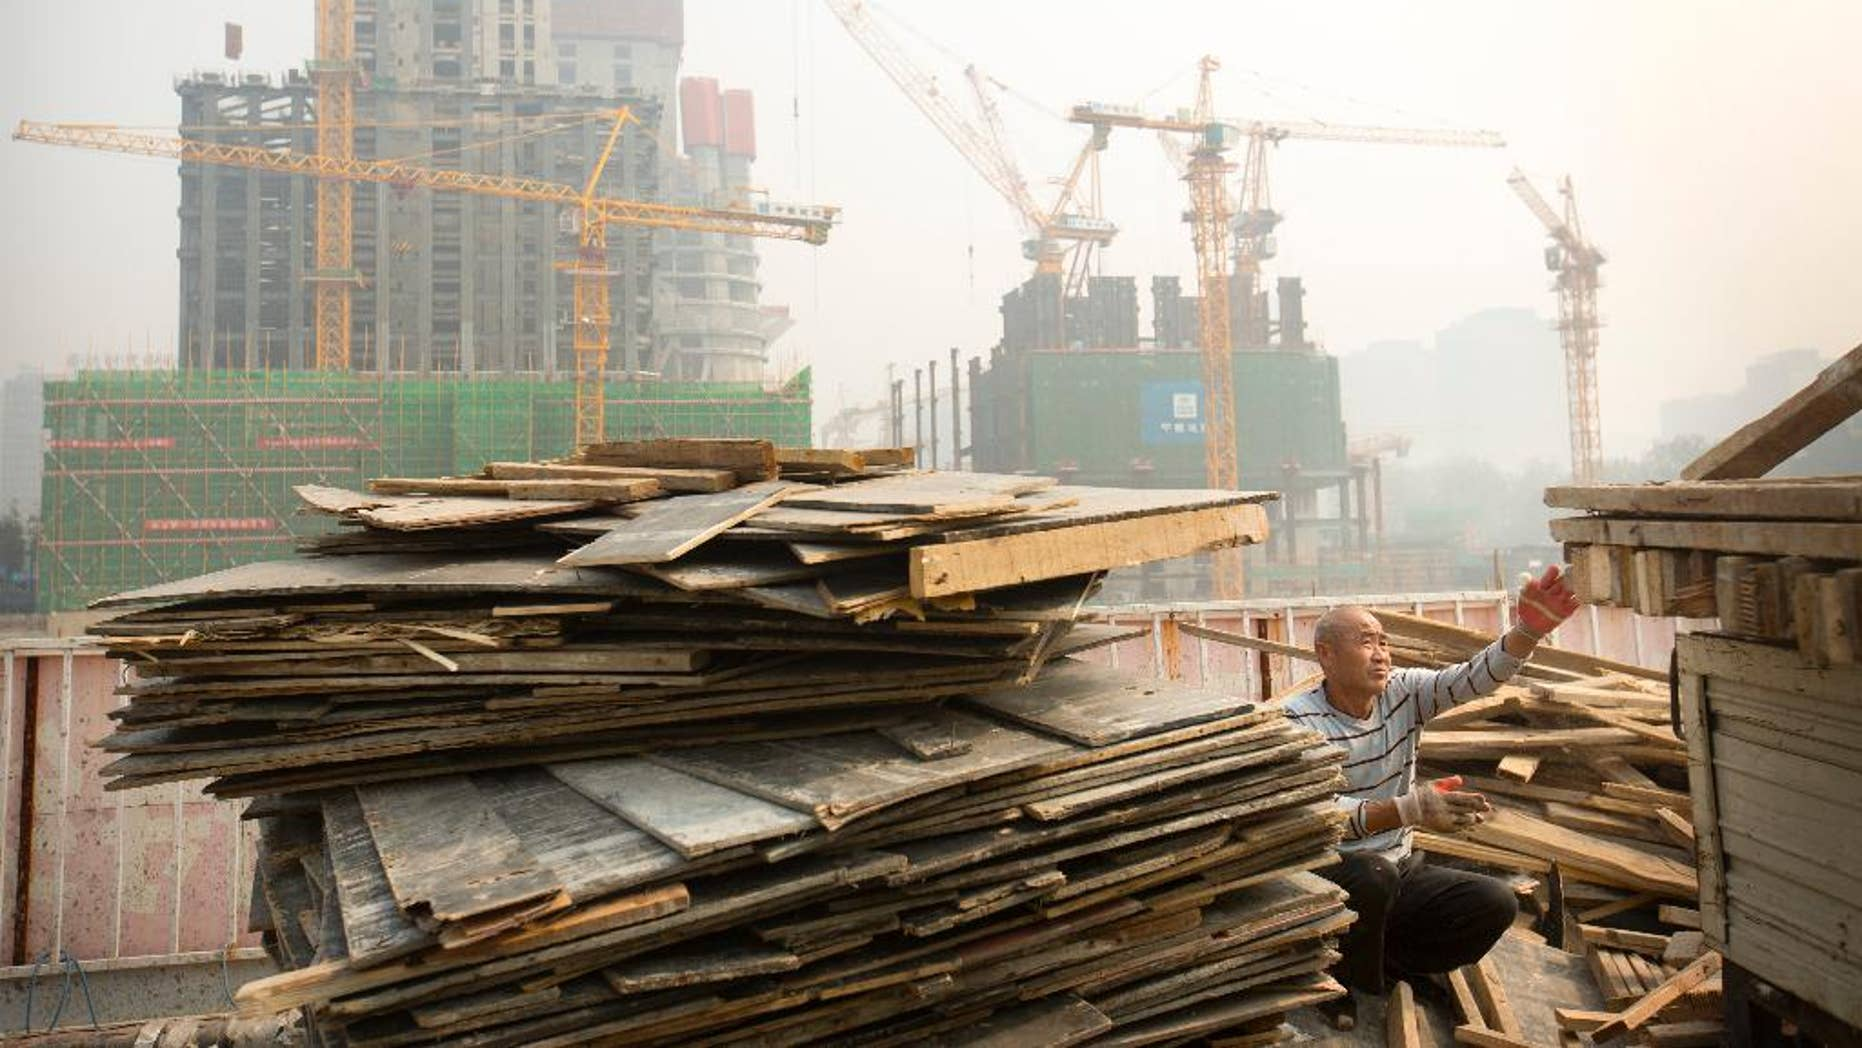 FILE - In this Oct. 6, 2015 file photo, a worker tosses boards onto the back of a truck at a construction site in Beijing. China's official data show economic growth slowing but skeptics say the downturn is much deeper than Beijing admits. The latest data Tuesday, Oct. 20, 2015,  showed growth in the world's No. 2 economy fell to a six-year low of 6.9 percent in the latest quarter. Private sector economists, however, say this year's true rate might be as low as 4 percent.(AP Photo/Mark Schiefelbein, File)